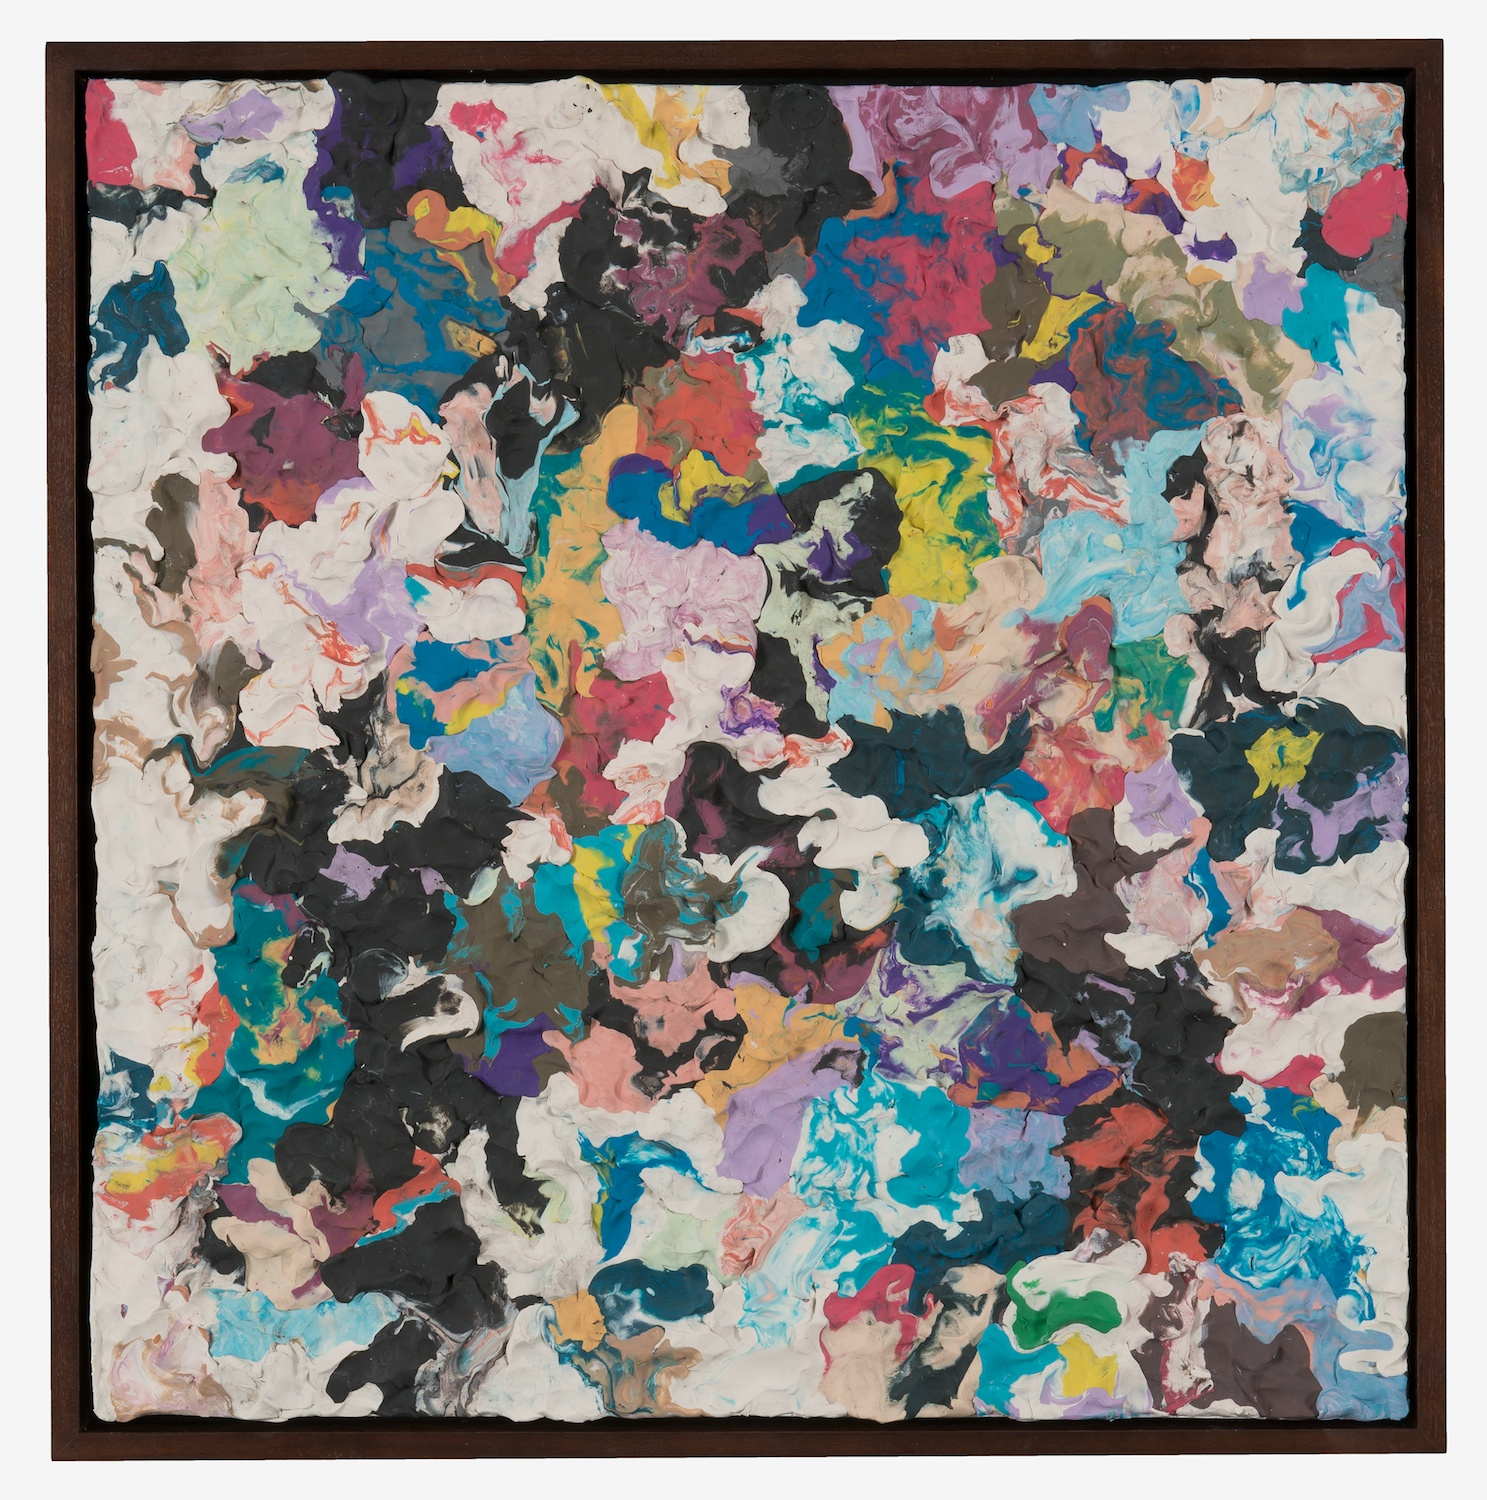 Dan Rees  Untitled  2013 Plasticine on panel in walnut frame 21 ½h x 21w x 2d in DR011